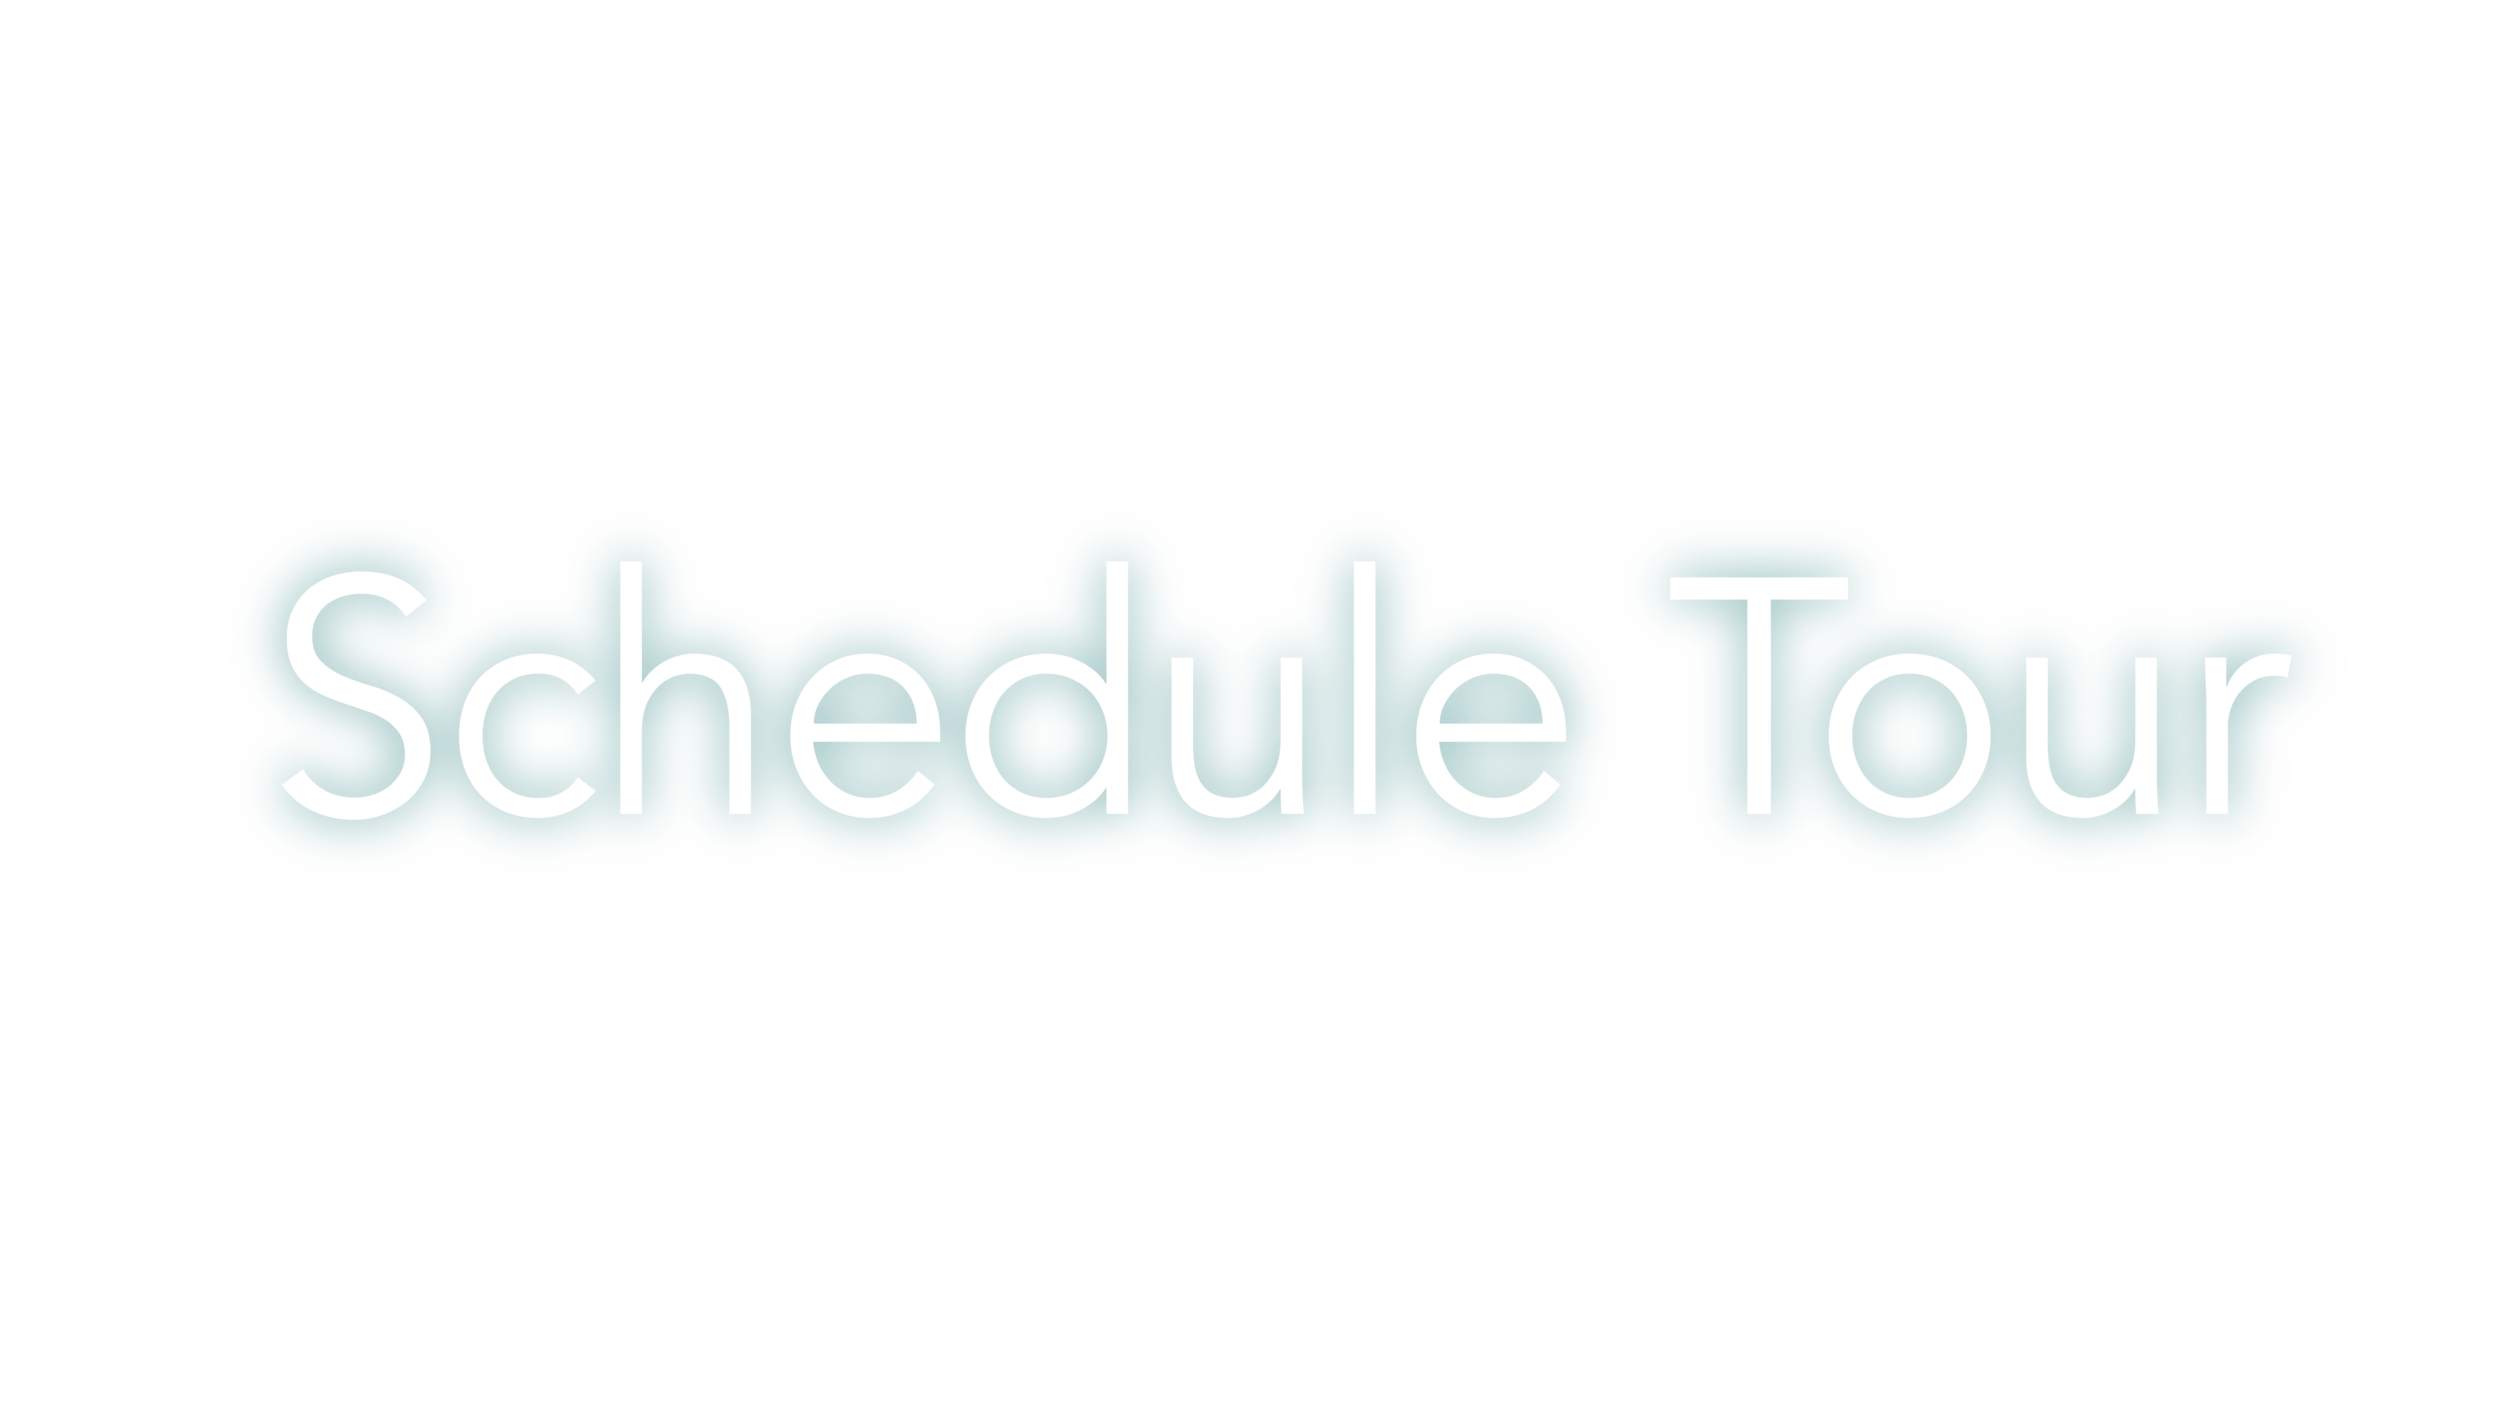 Schedule Tour-01.png